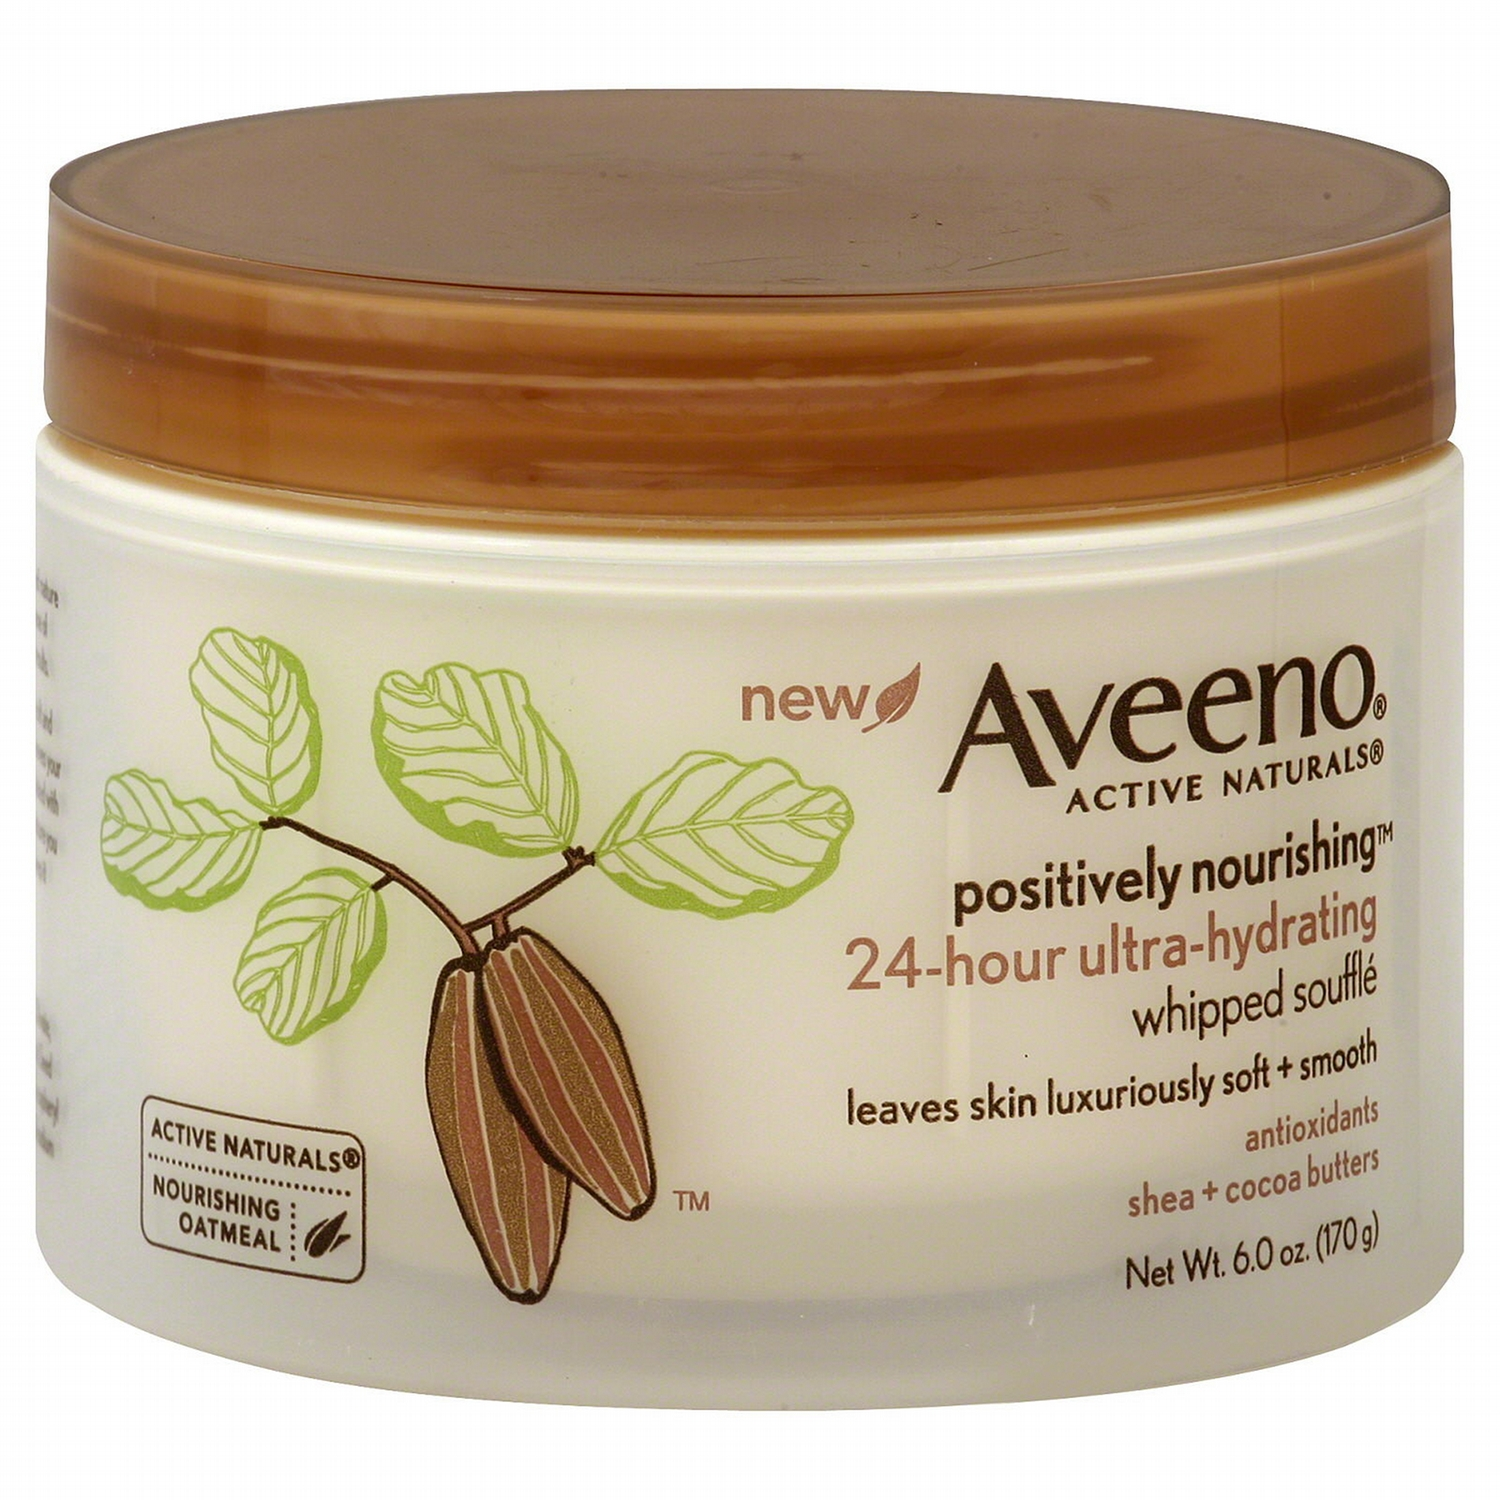 Aveeno® Active Naturals Positively Nourishing Whipped Souffle